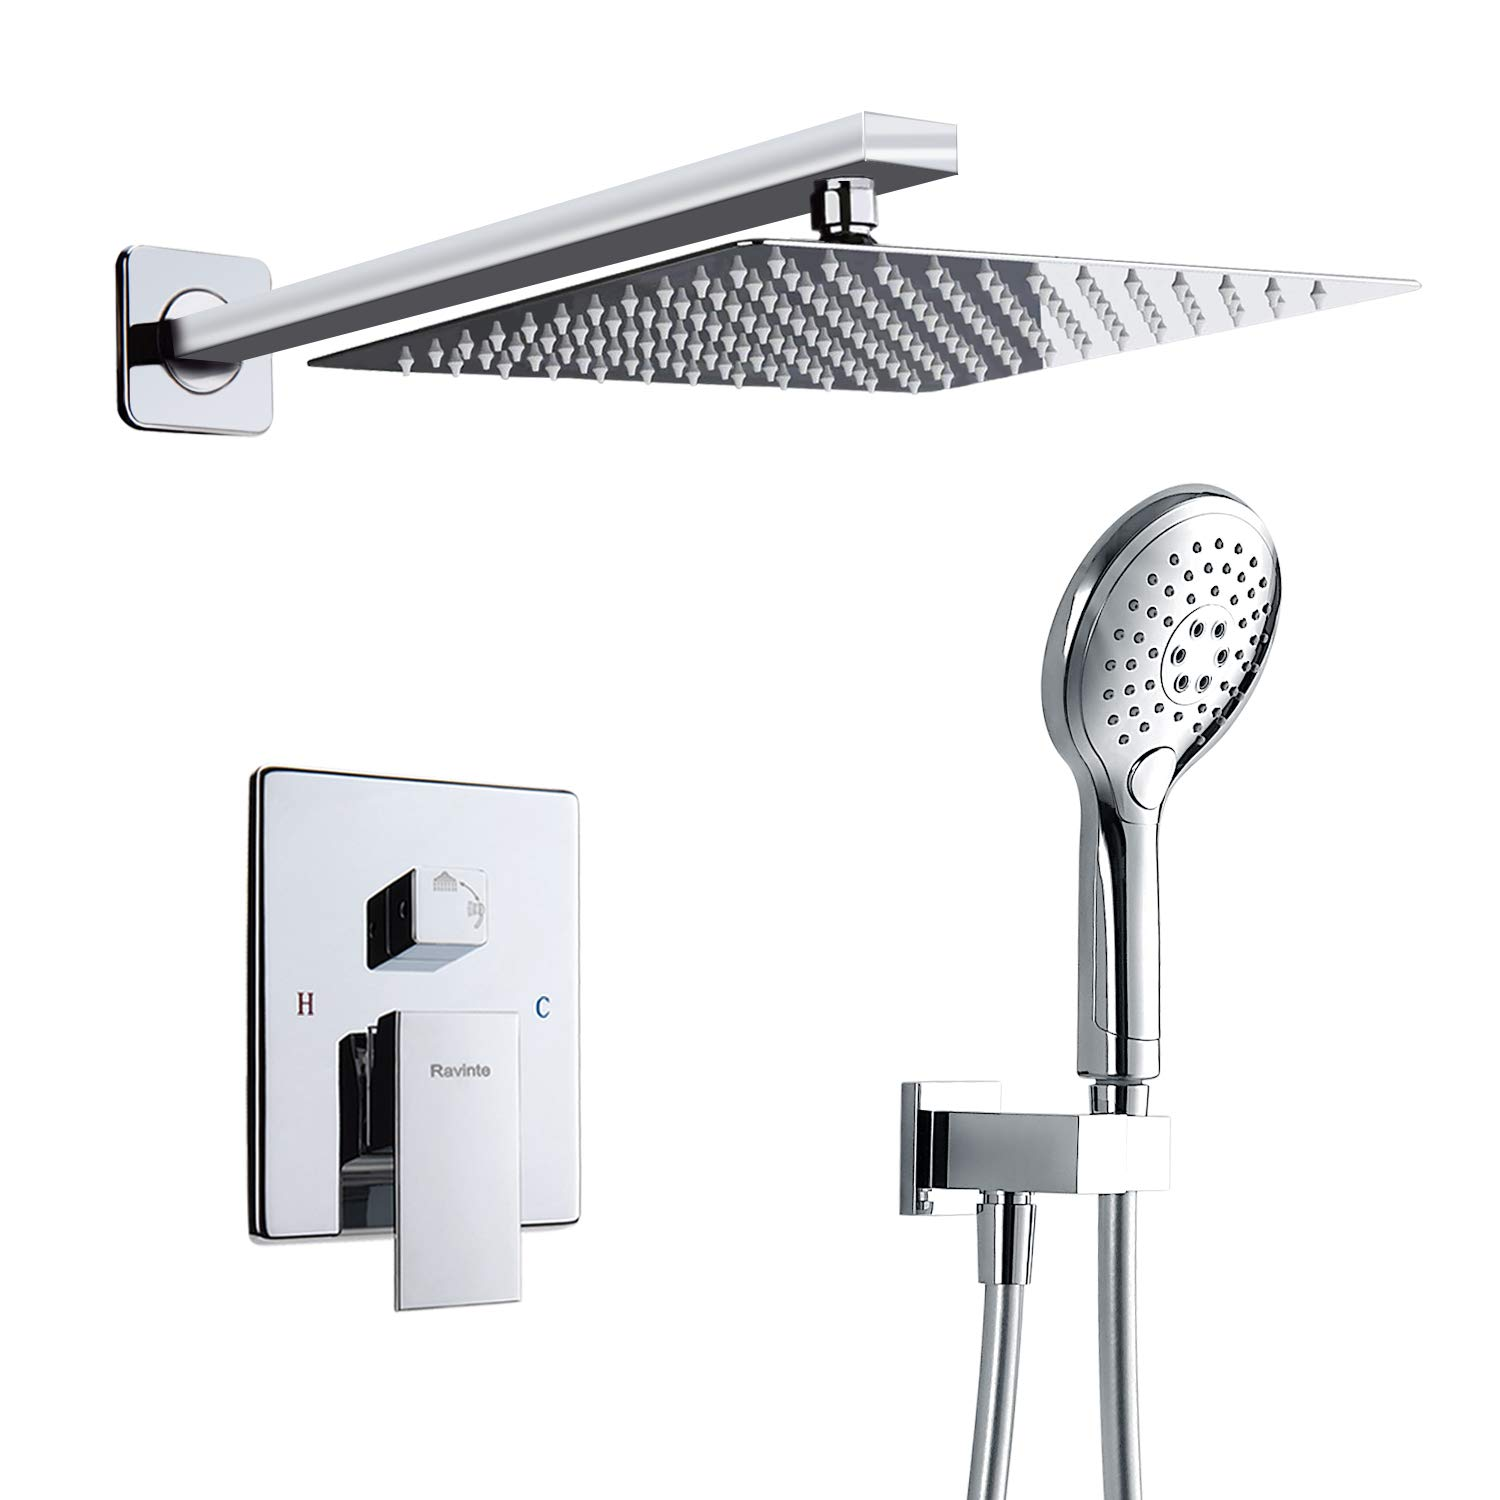 Bathroom Sinks,faucets & Accessories Faucet Cartridges Wall Mounted Digital Shower Mixer Valve Control With Display Intelligent Pre-box Bath Shower Panel Shower Mixers Chrome Finish To Be Distributed All Over The World